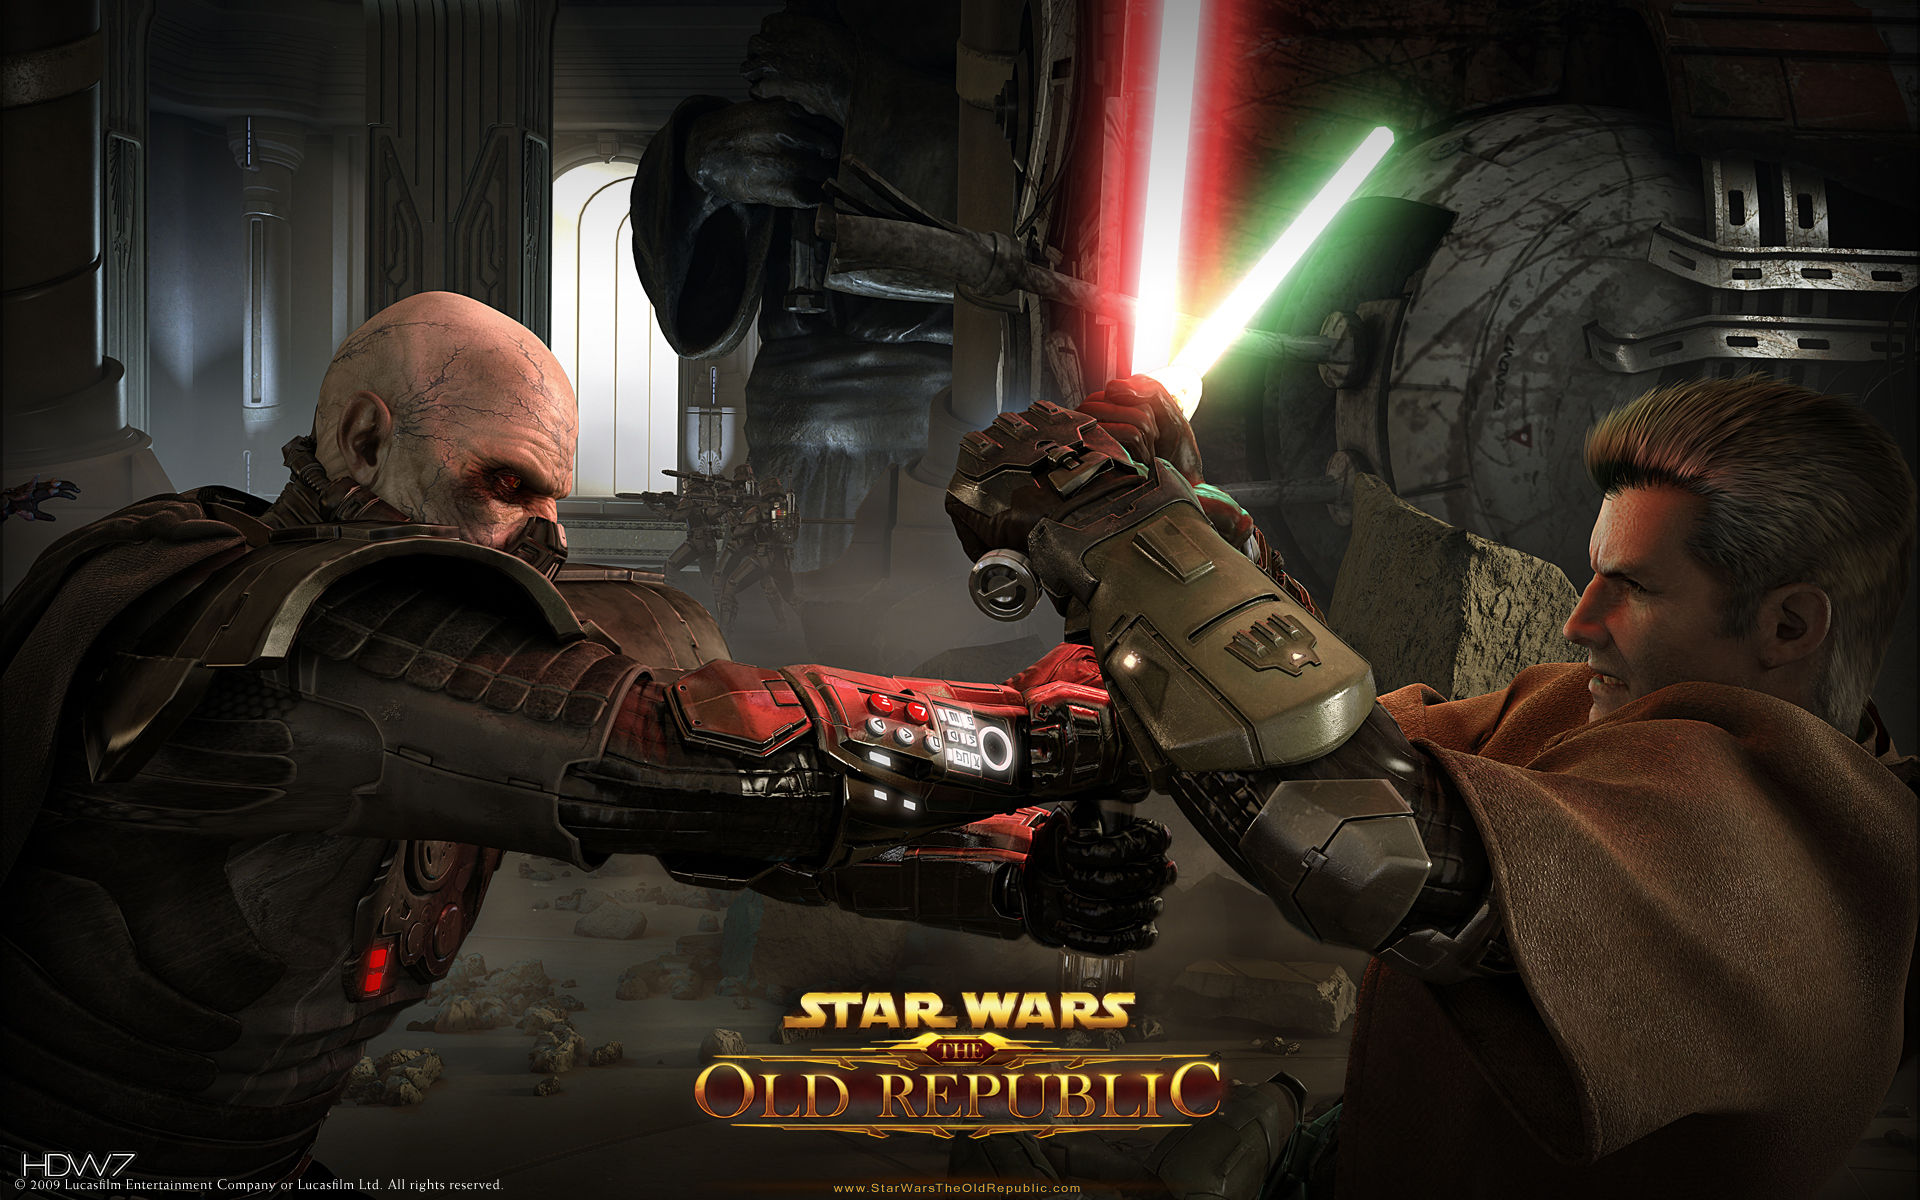 Star Wars The Old Republic Deceived Widescreen Wallpaper Hd Wallpaper Gallery 420